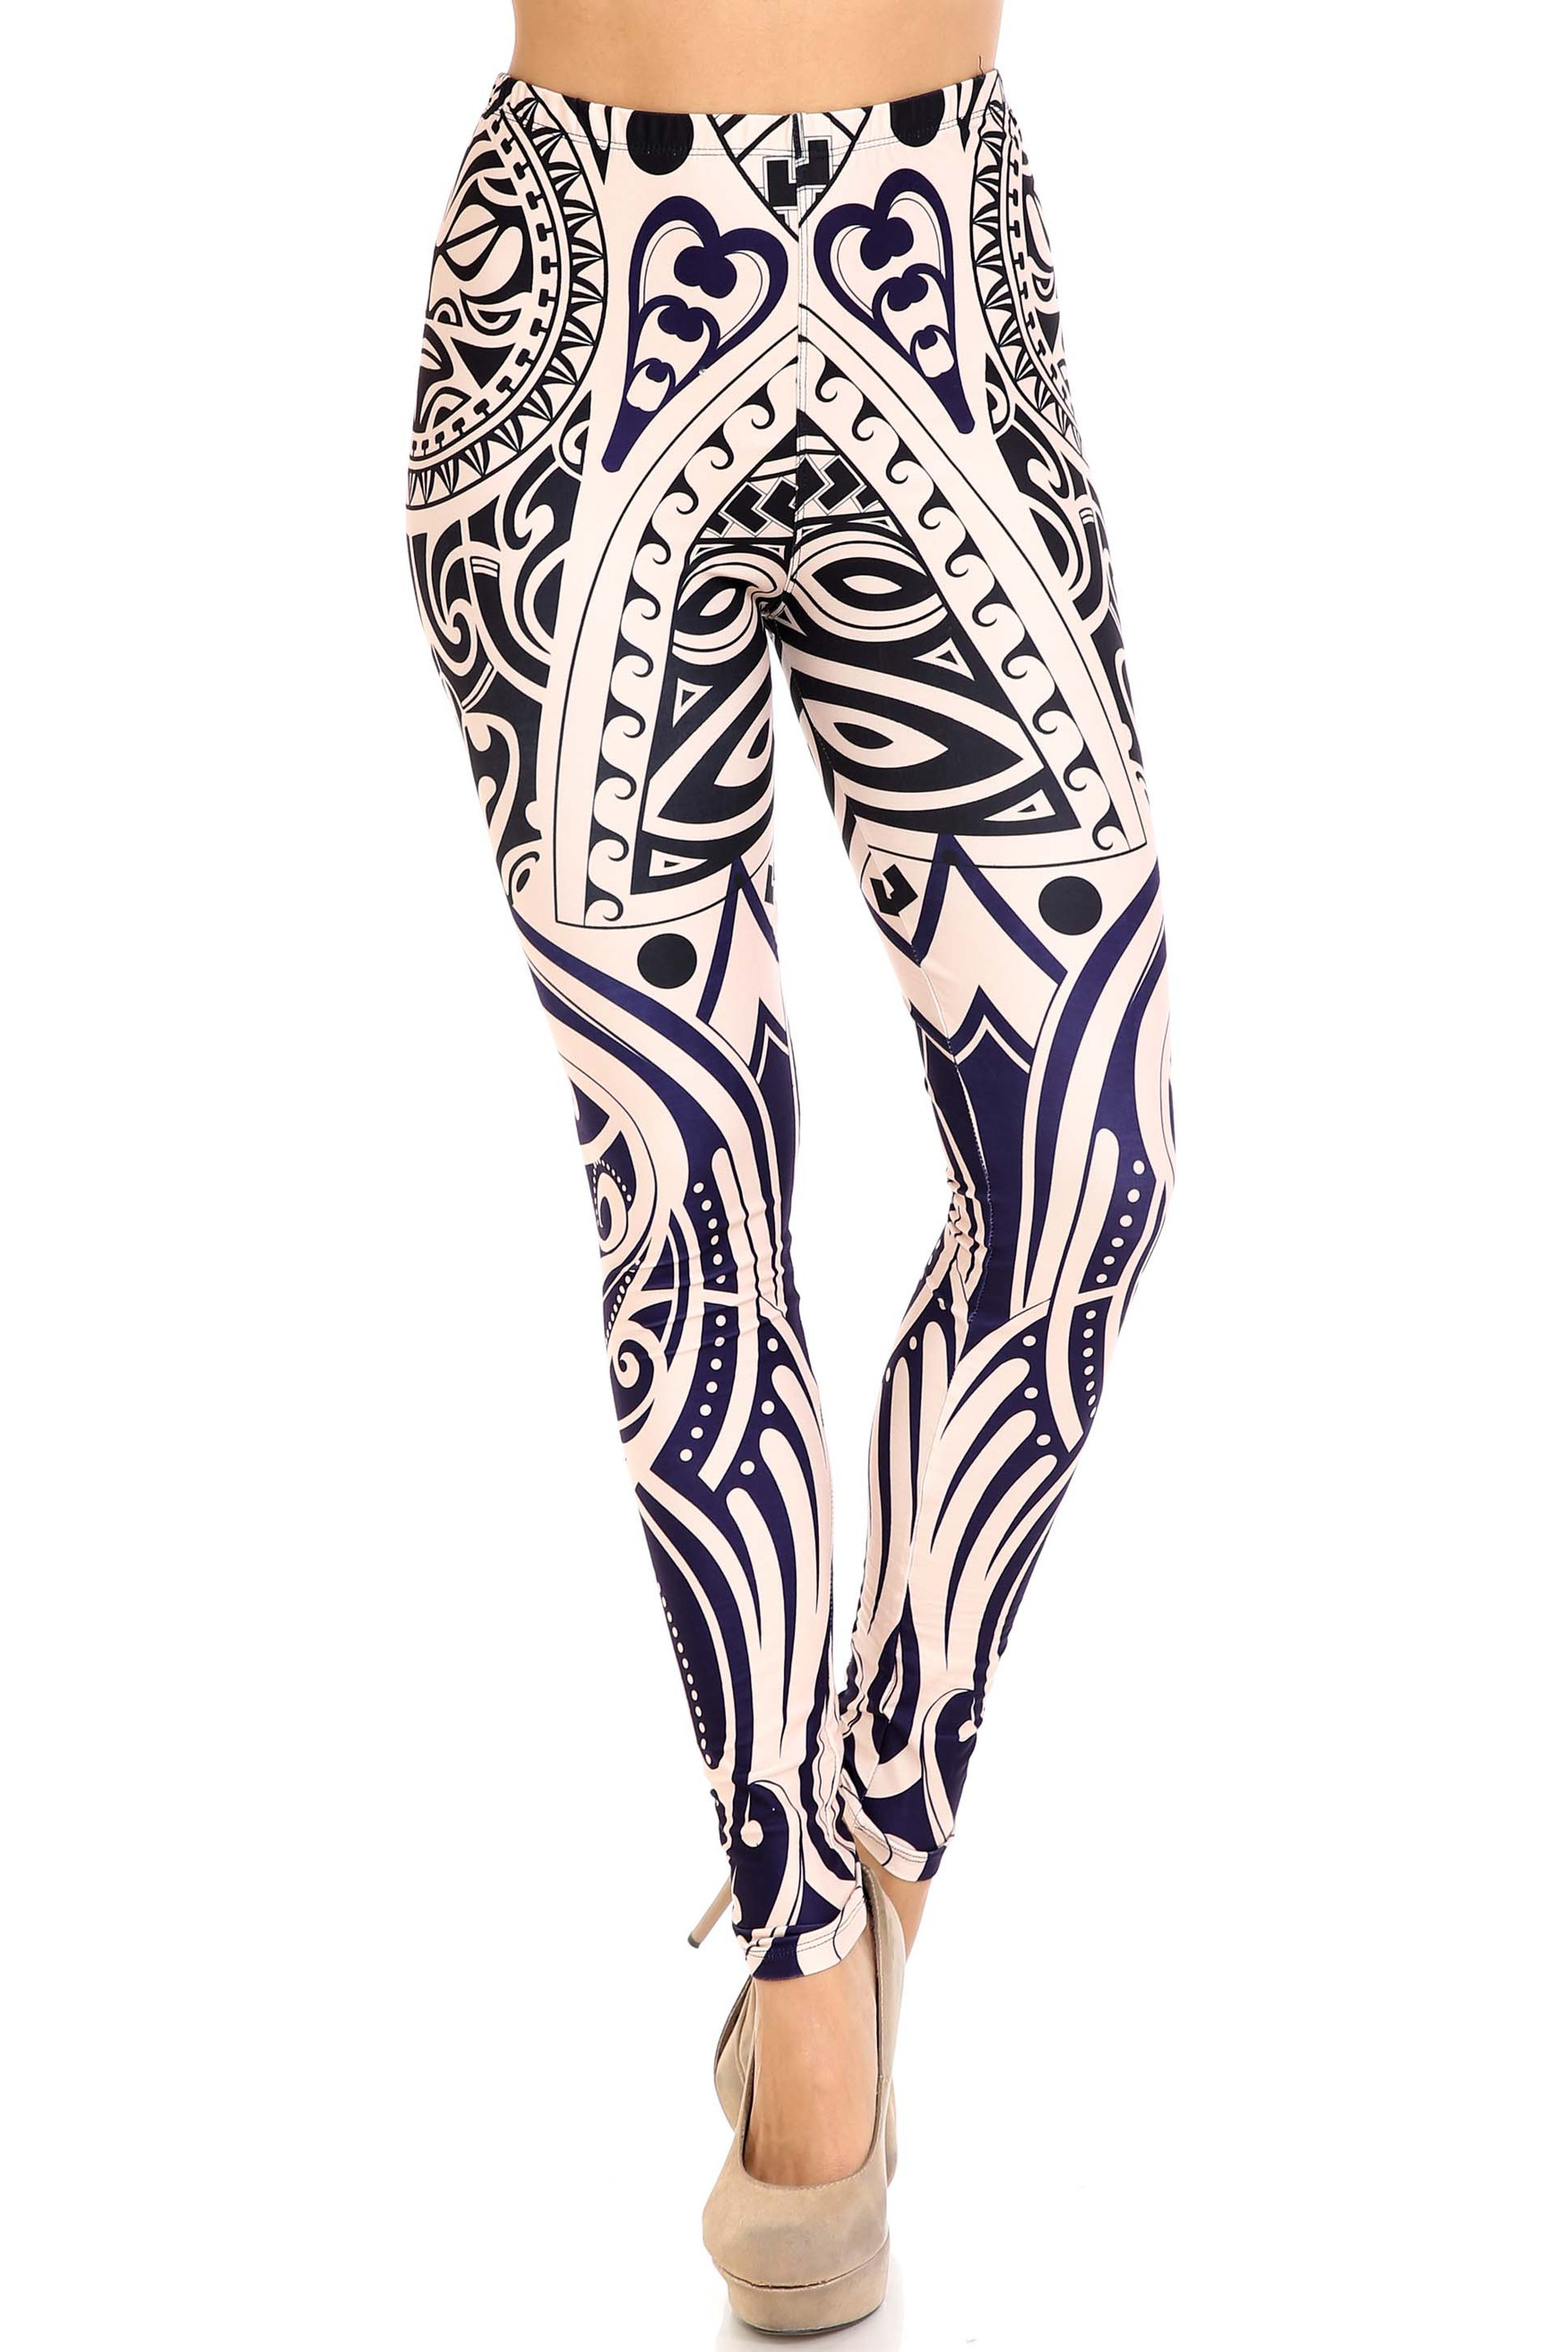 Front of mid rise Creamy Soft Valhalla Leggings - USA Fashion™ with a full length hem and elastic waist.